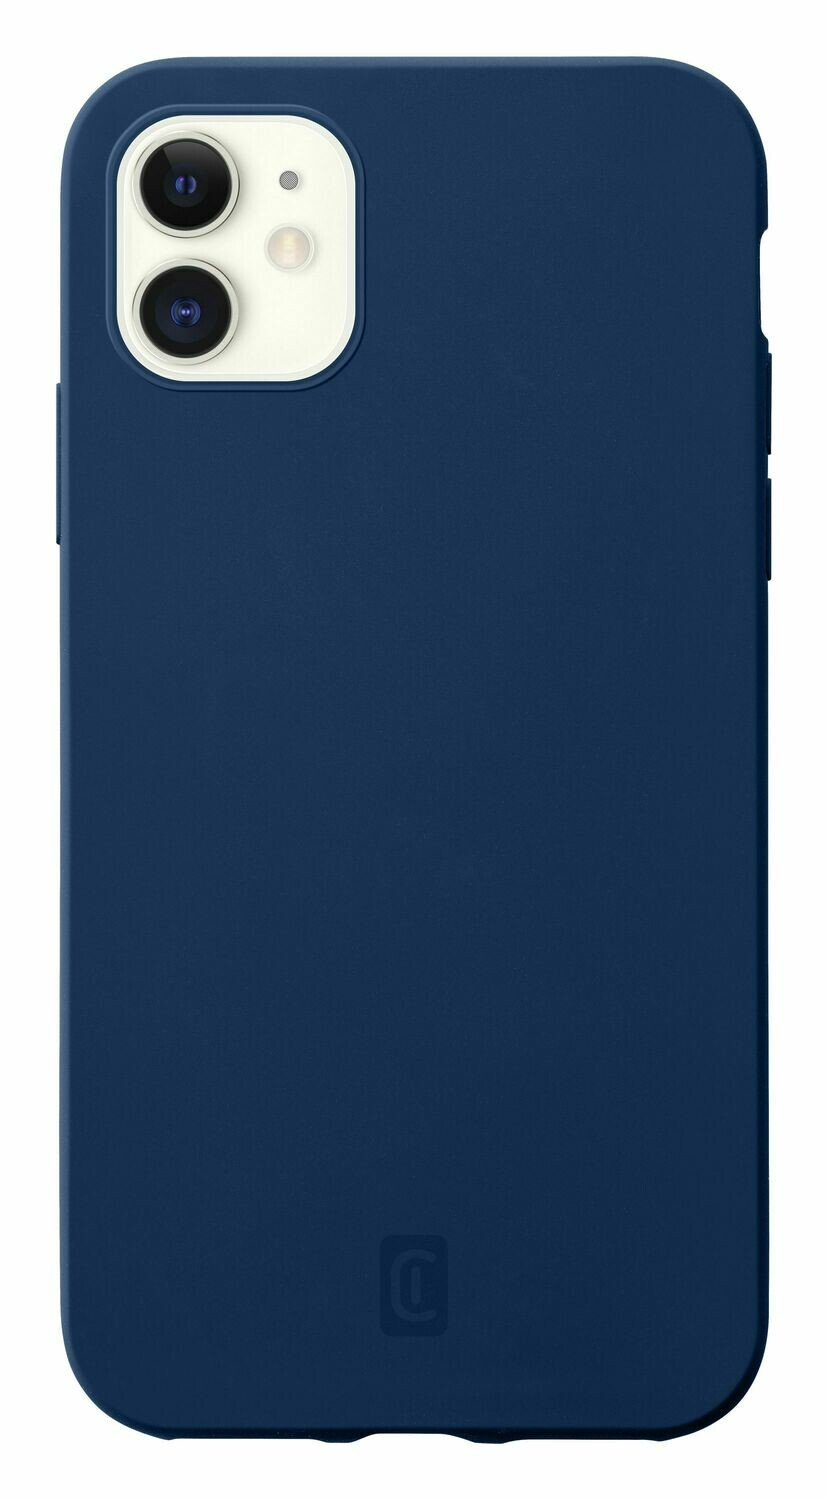 iPhone 12 mini, hoesje Sensation, blauw